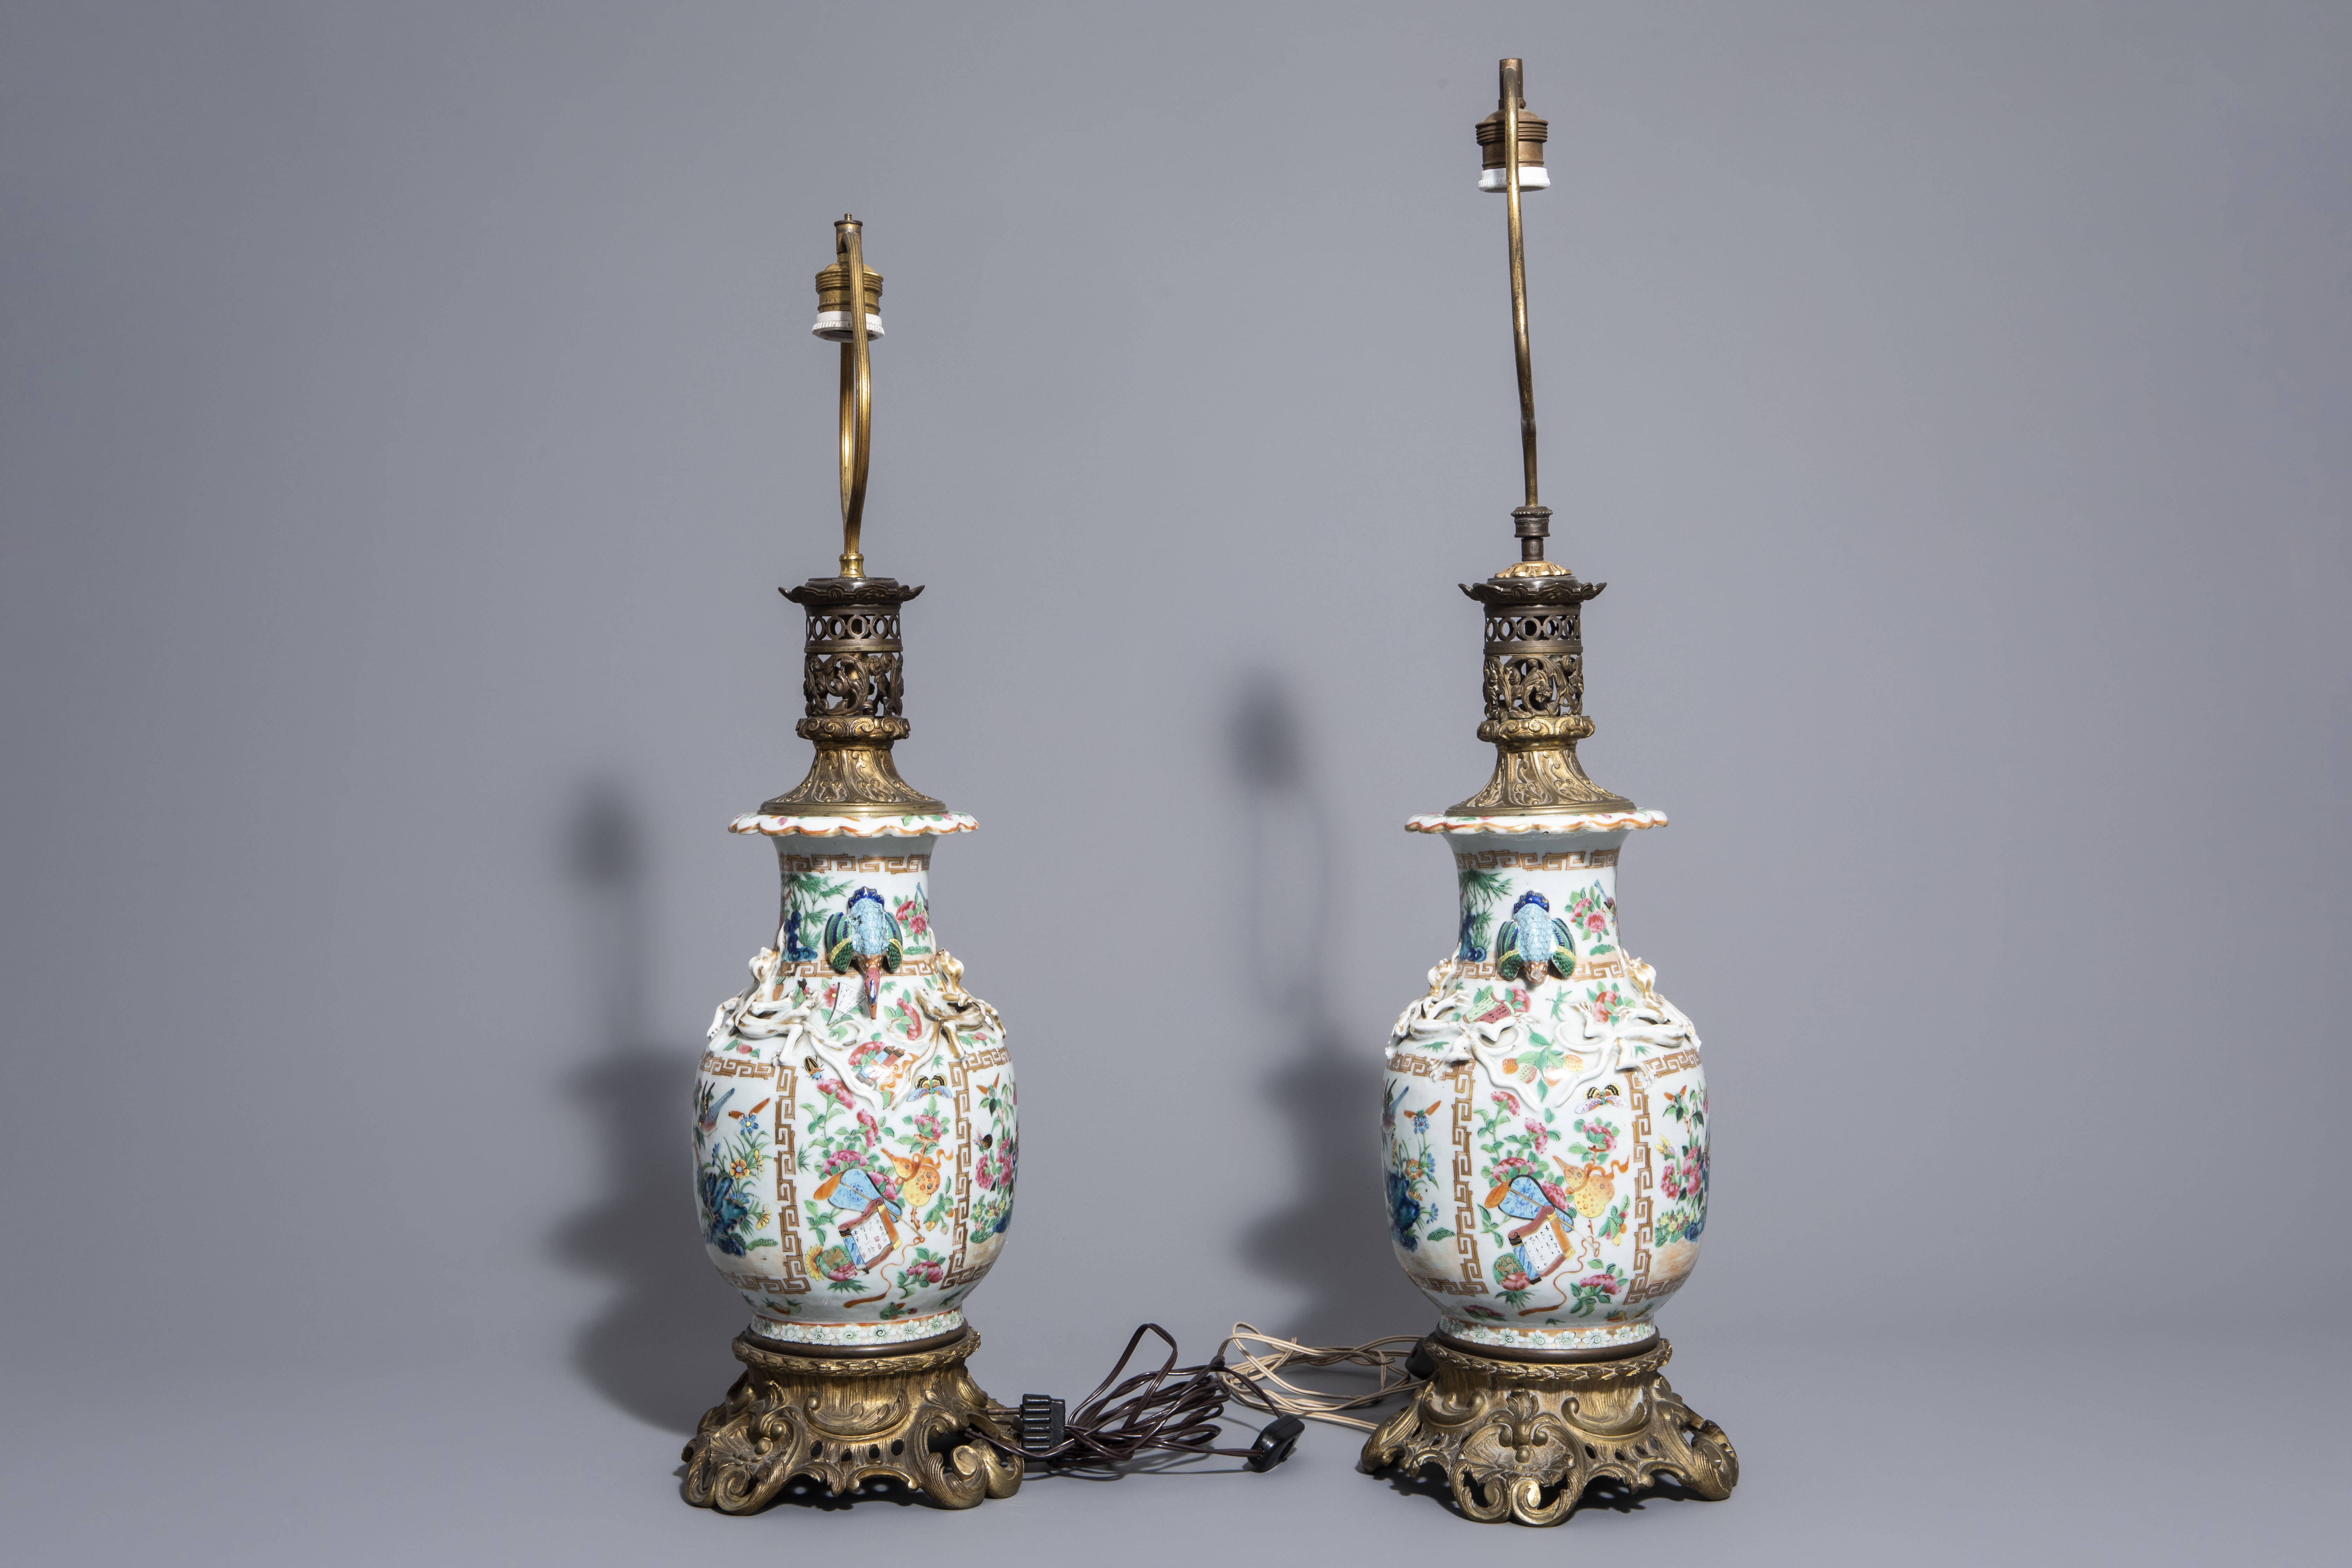 A pair of Chinese Canton famille rose vases mounted as lamps and a famille verte jar, 19th C. - Image 3 of 13